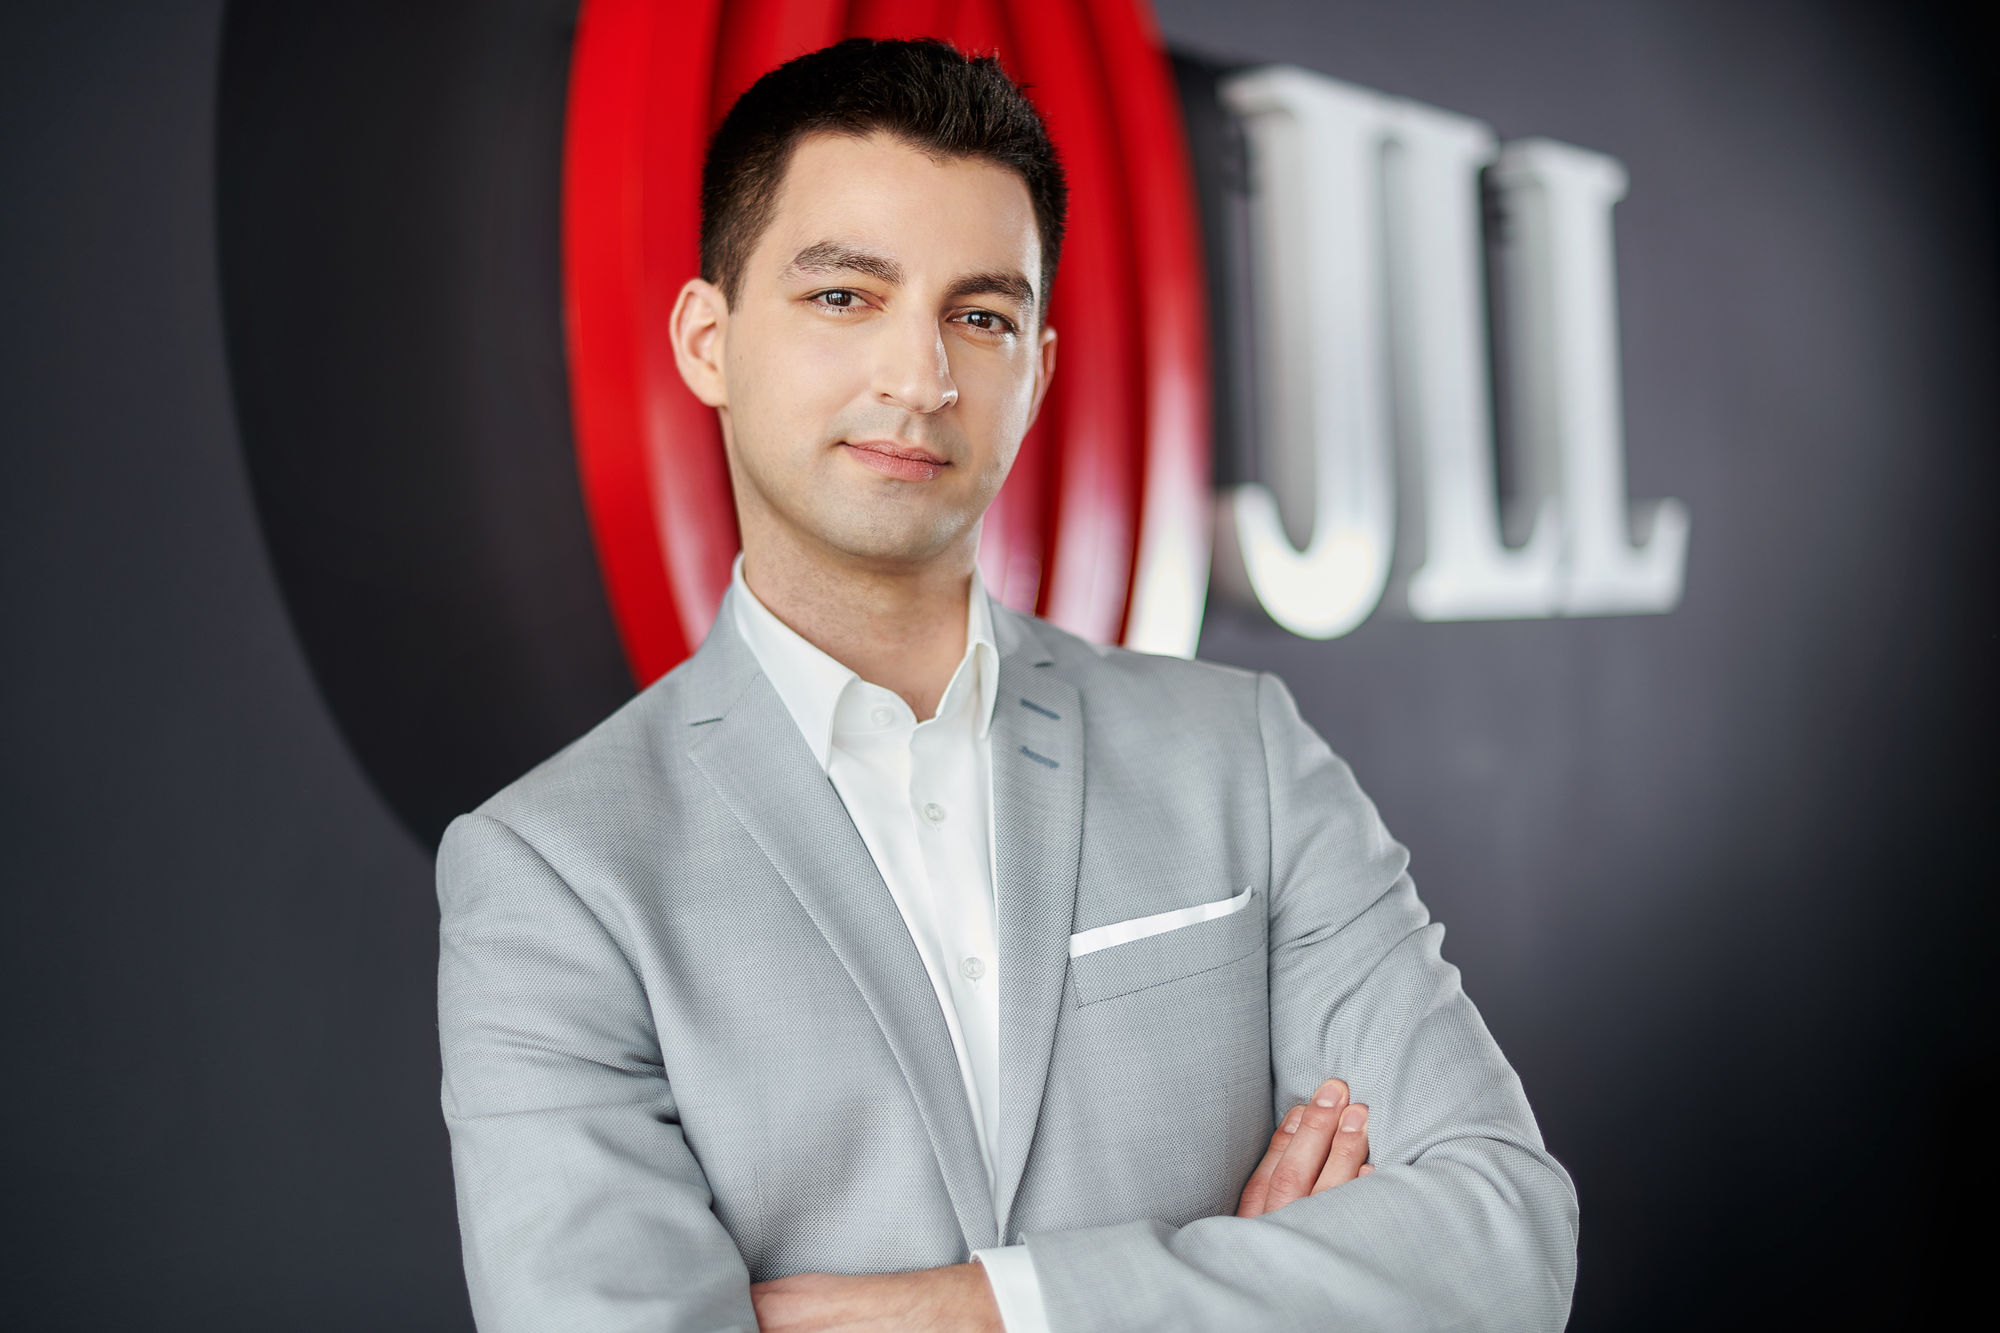 JLL Adam Lis Flexible Office Solutions Manager